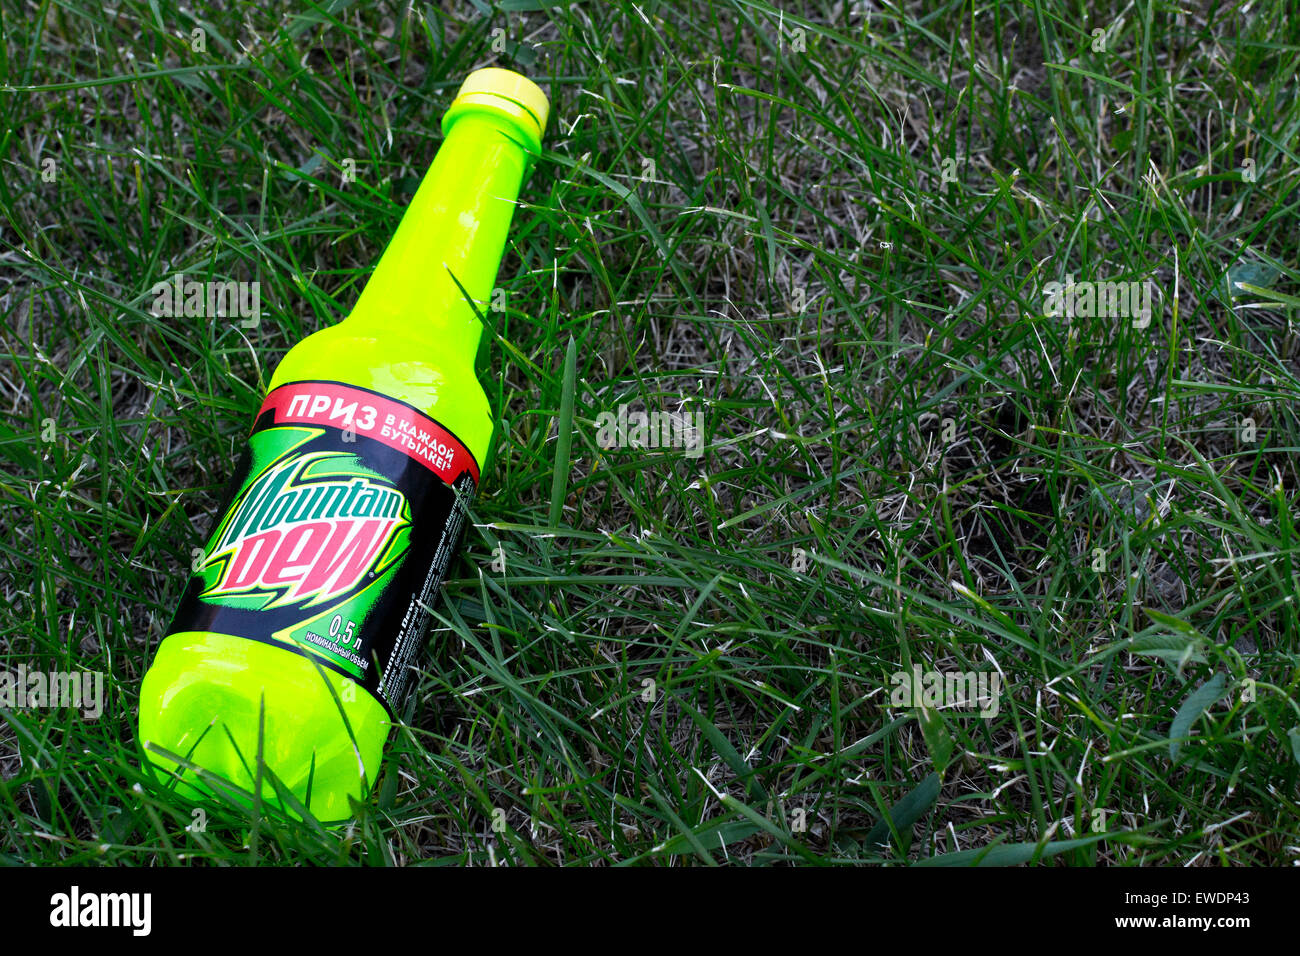 how to make mountain dew drink